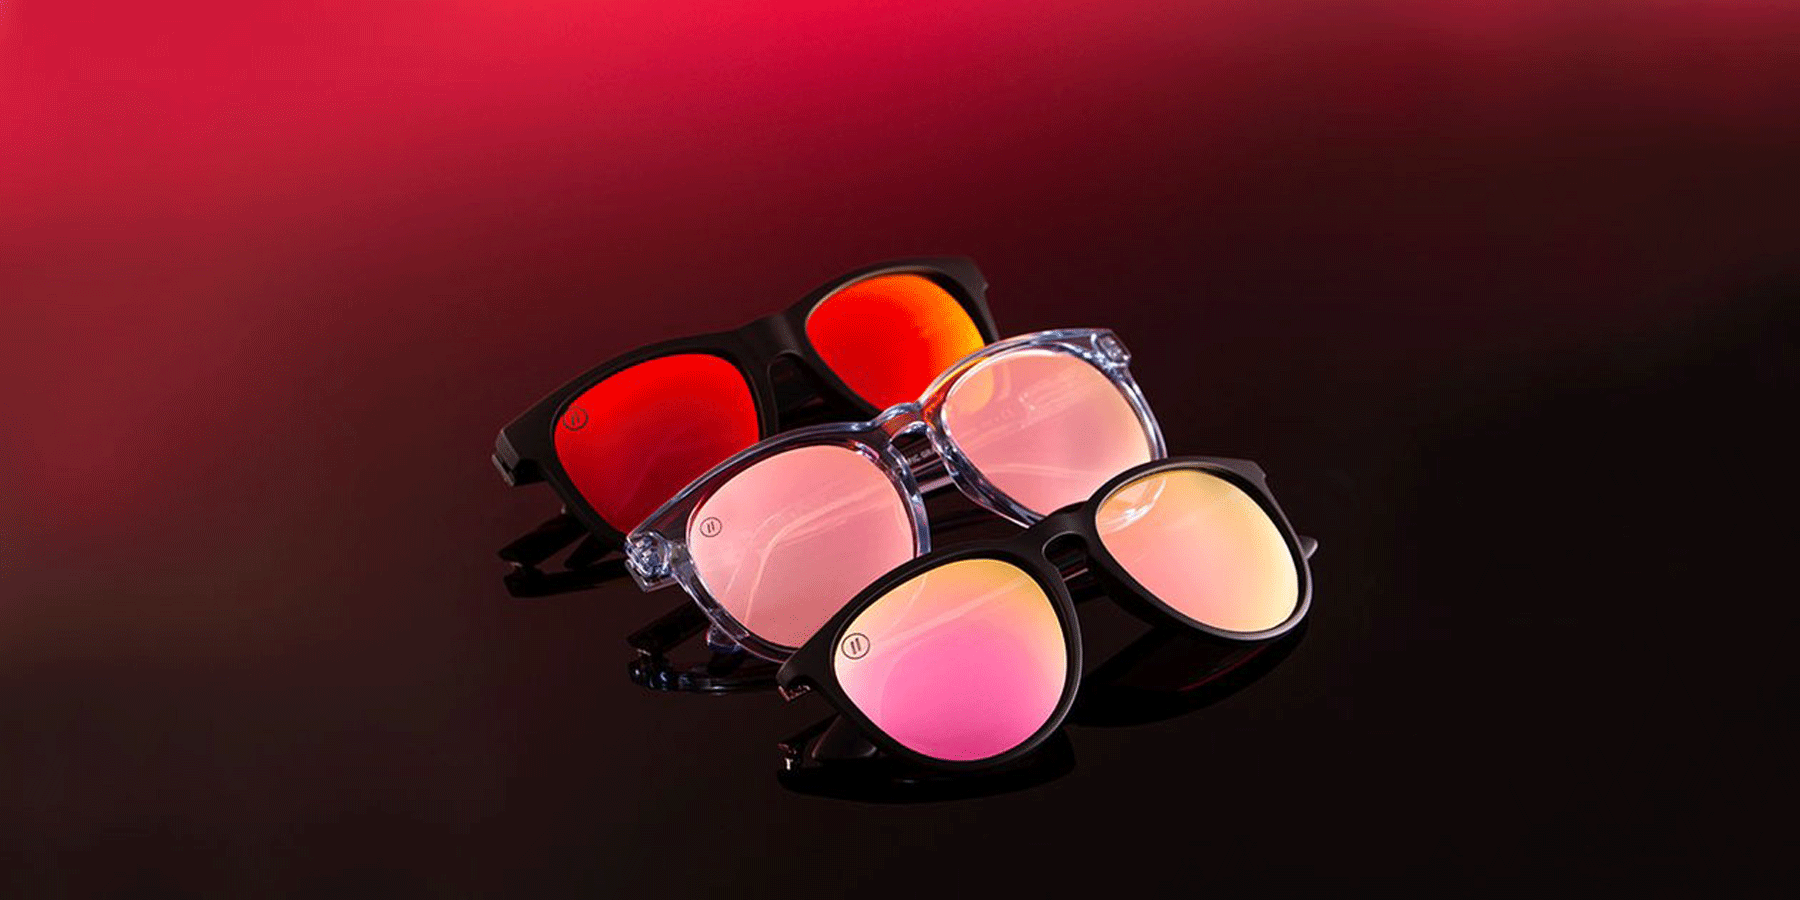 Rad Romance Sale: Save 30% OFF All Pink and Red Lenses!